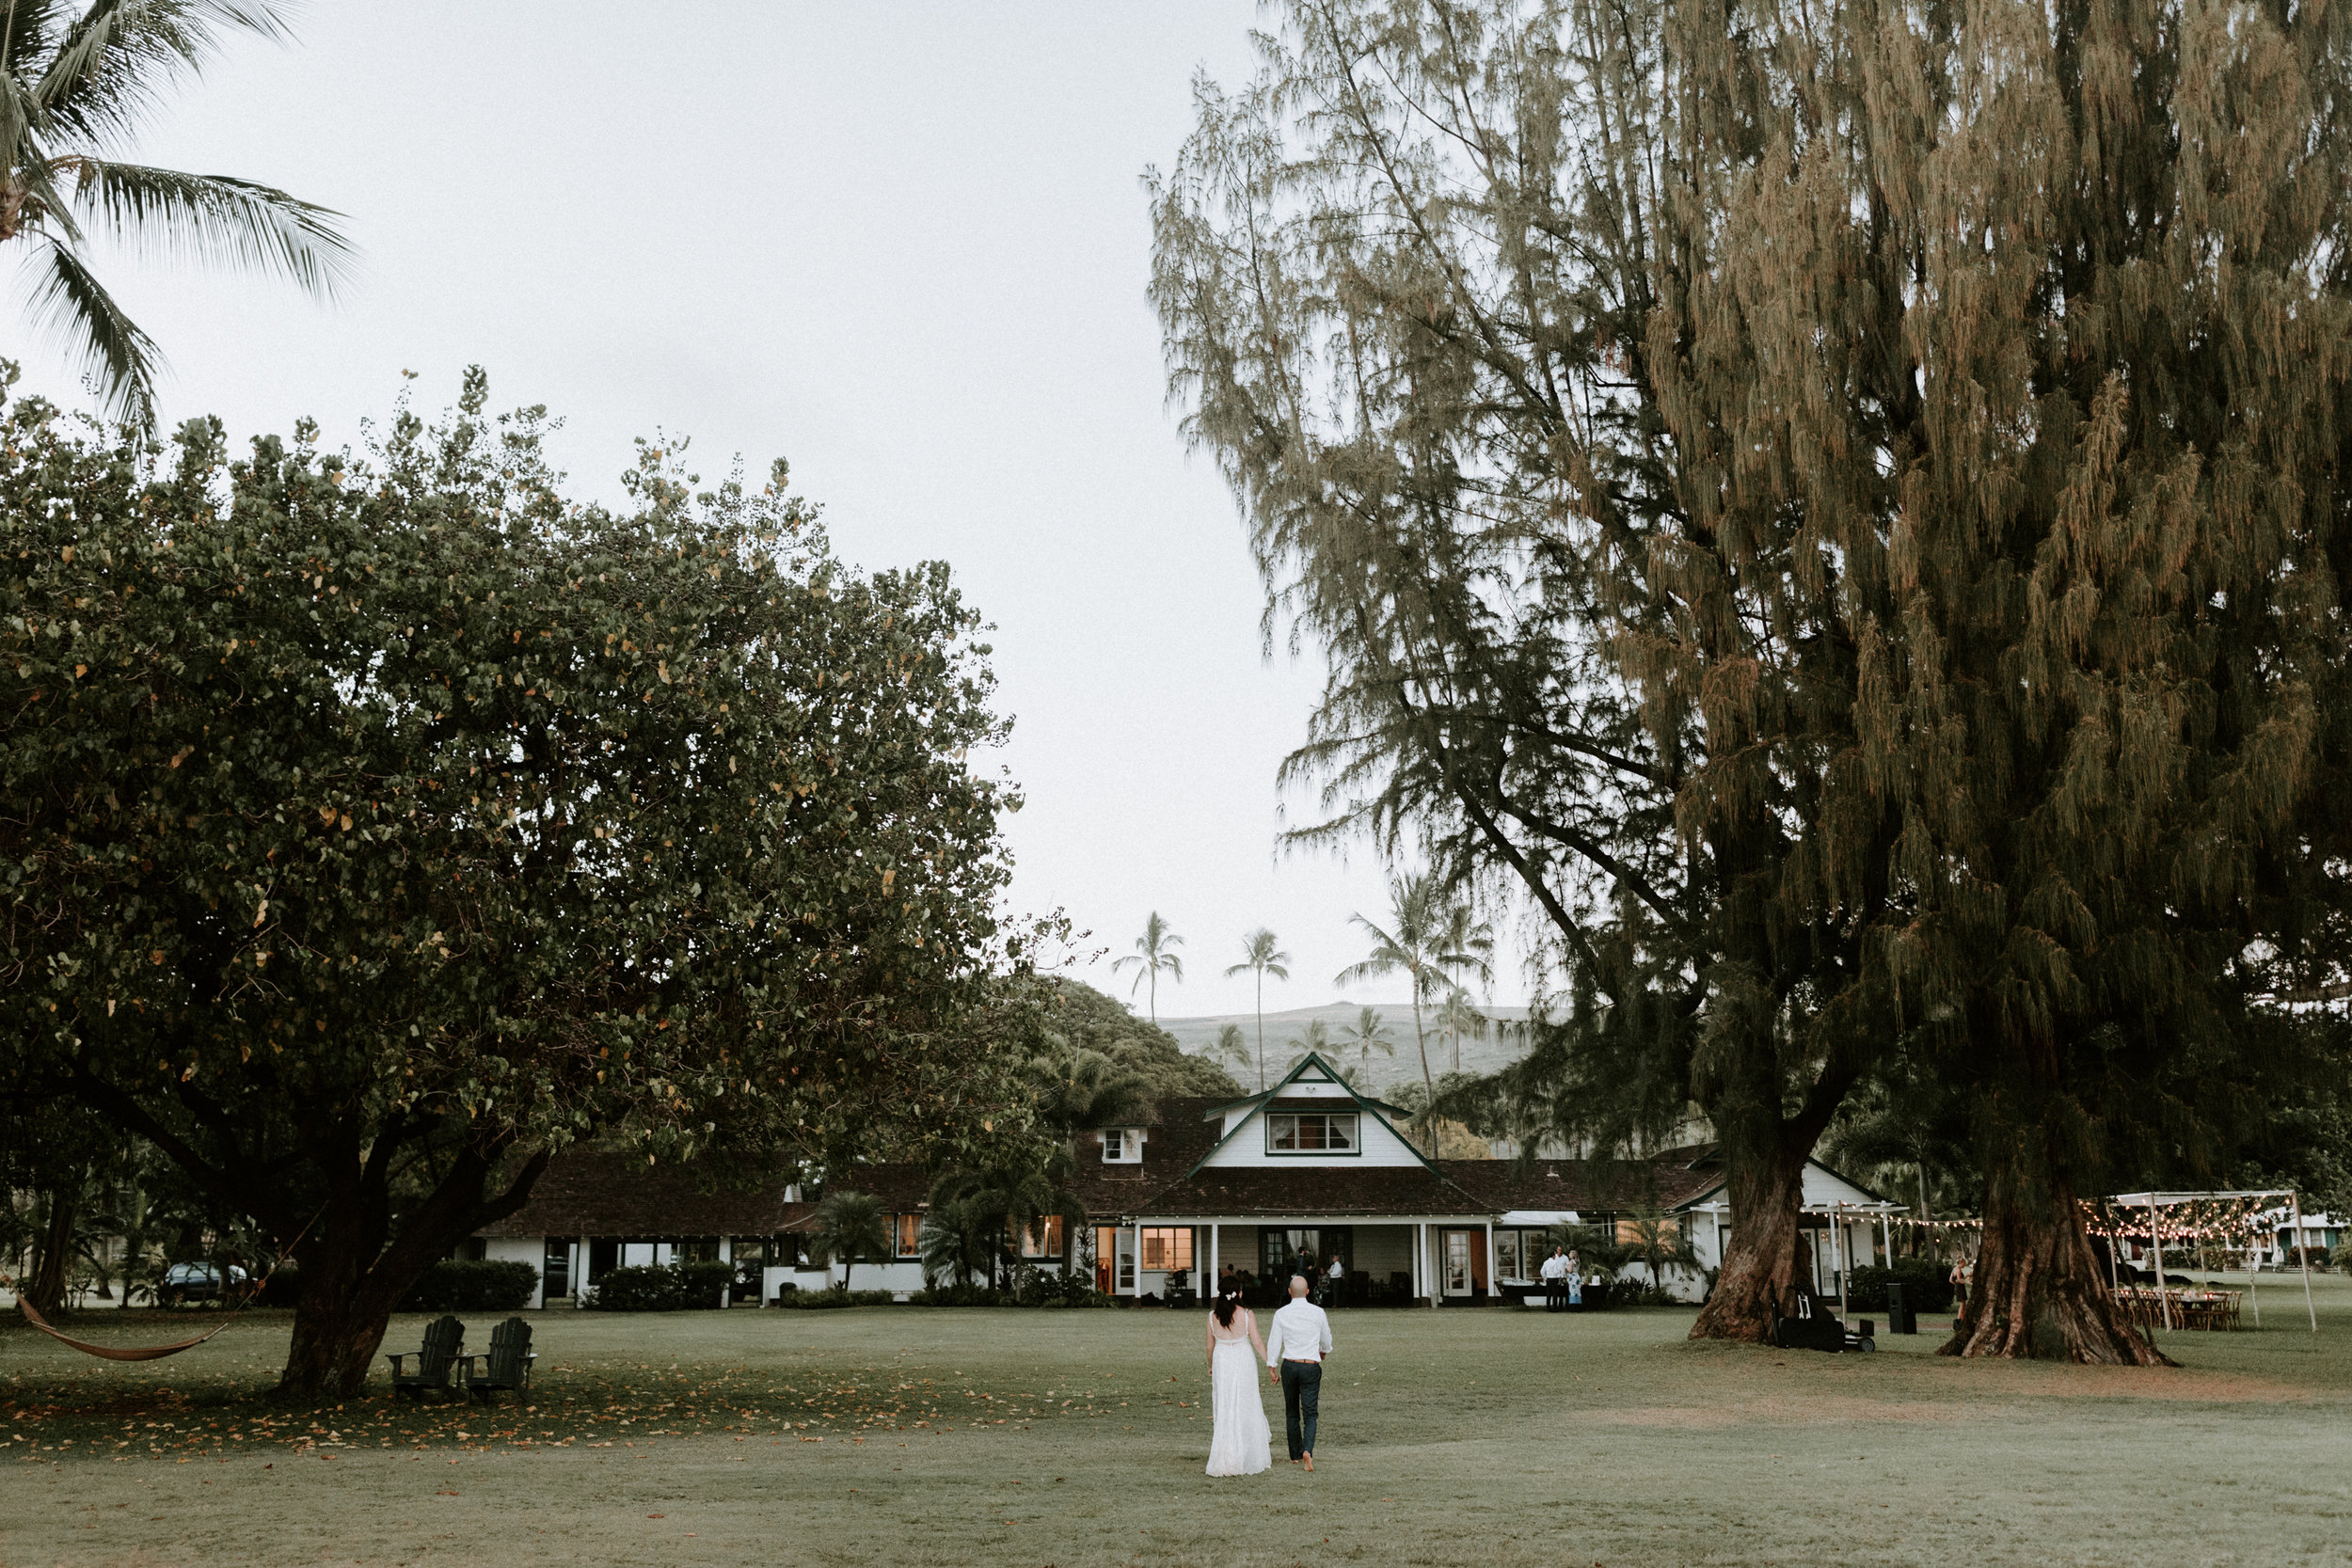 kauai__wedding-1-27.jpg